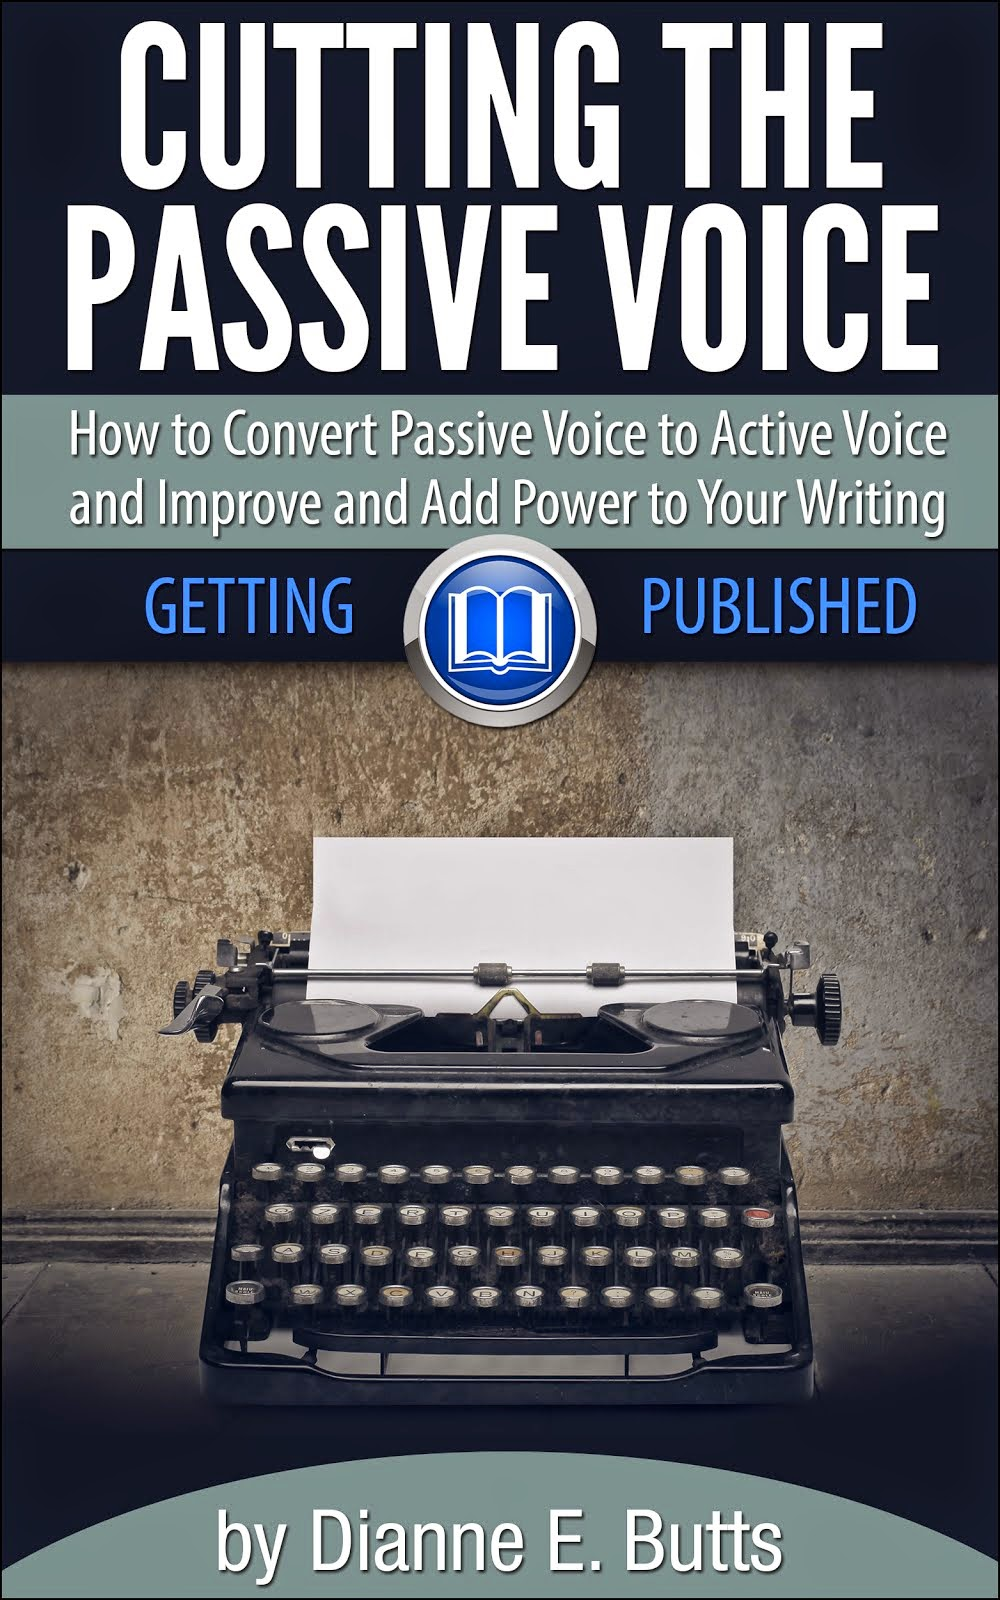 Cutting the Passive Voice